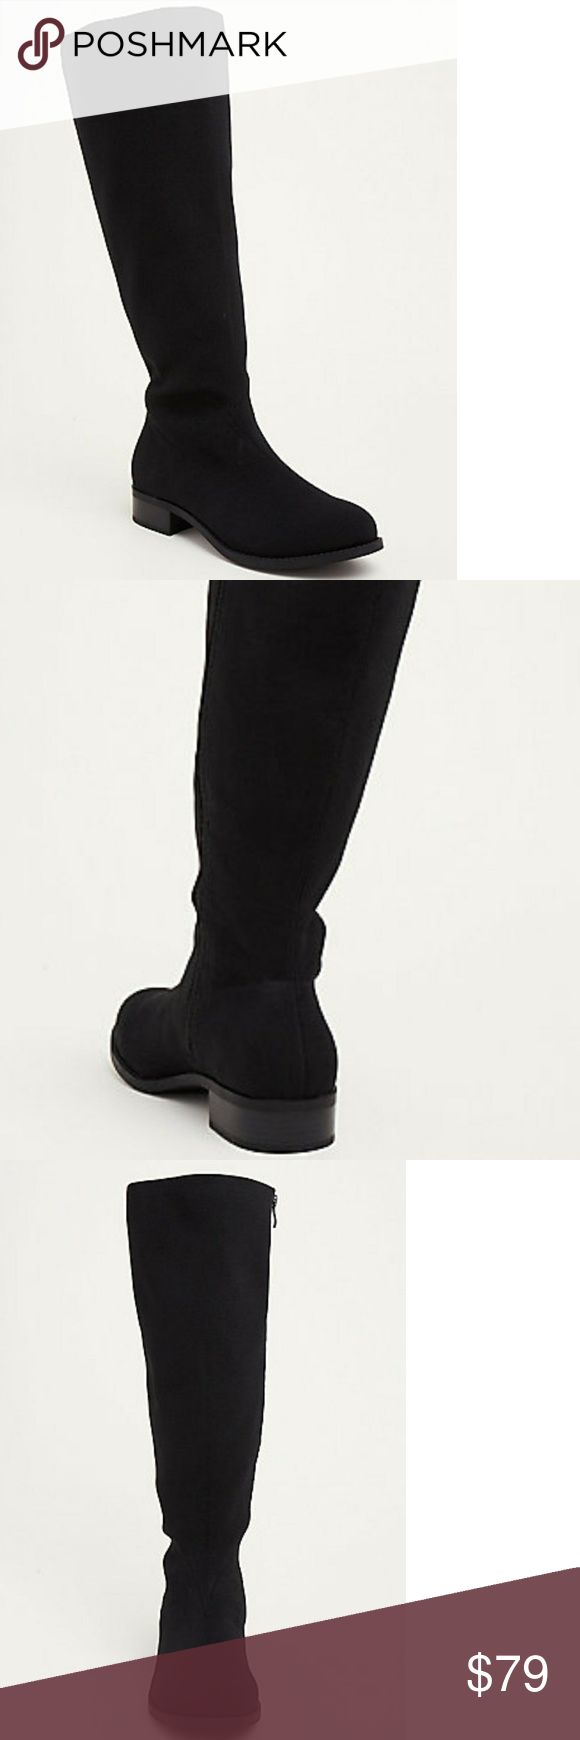 "TORRID All Over Stretch Knee-High Boots Comfiest. Boots. Ever. The pair features super stretchy black elastic material from knee to toe, lending stretch while also fitting to your calves like a second skin. The side zipper lends a structured touch to the relaxed style. Includes box. Calf Width -19.13"" Heel height - 1.25"" Wide width.  I am a 10.5 regular and the wide width doesn't feel to big (just a side note). torrid Shoes"